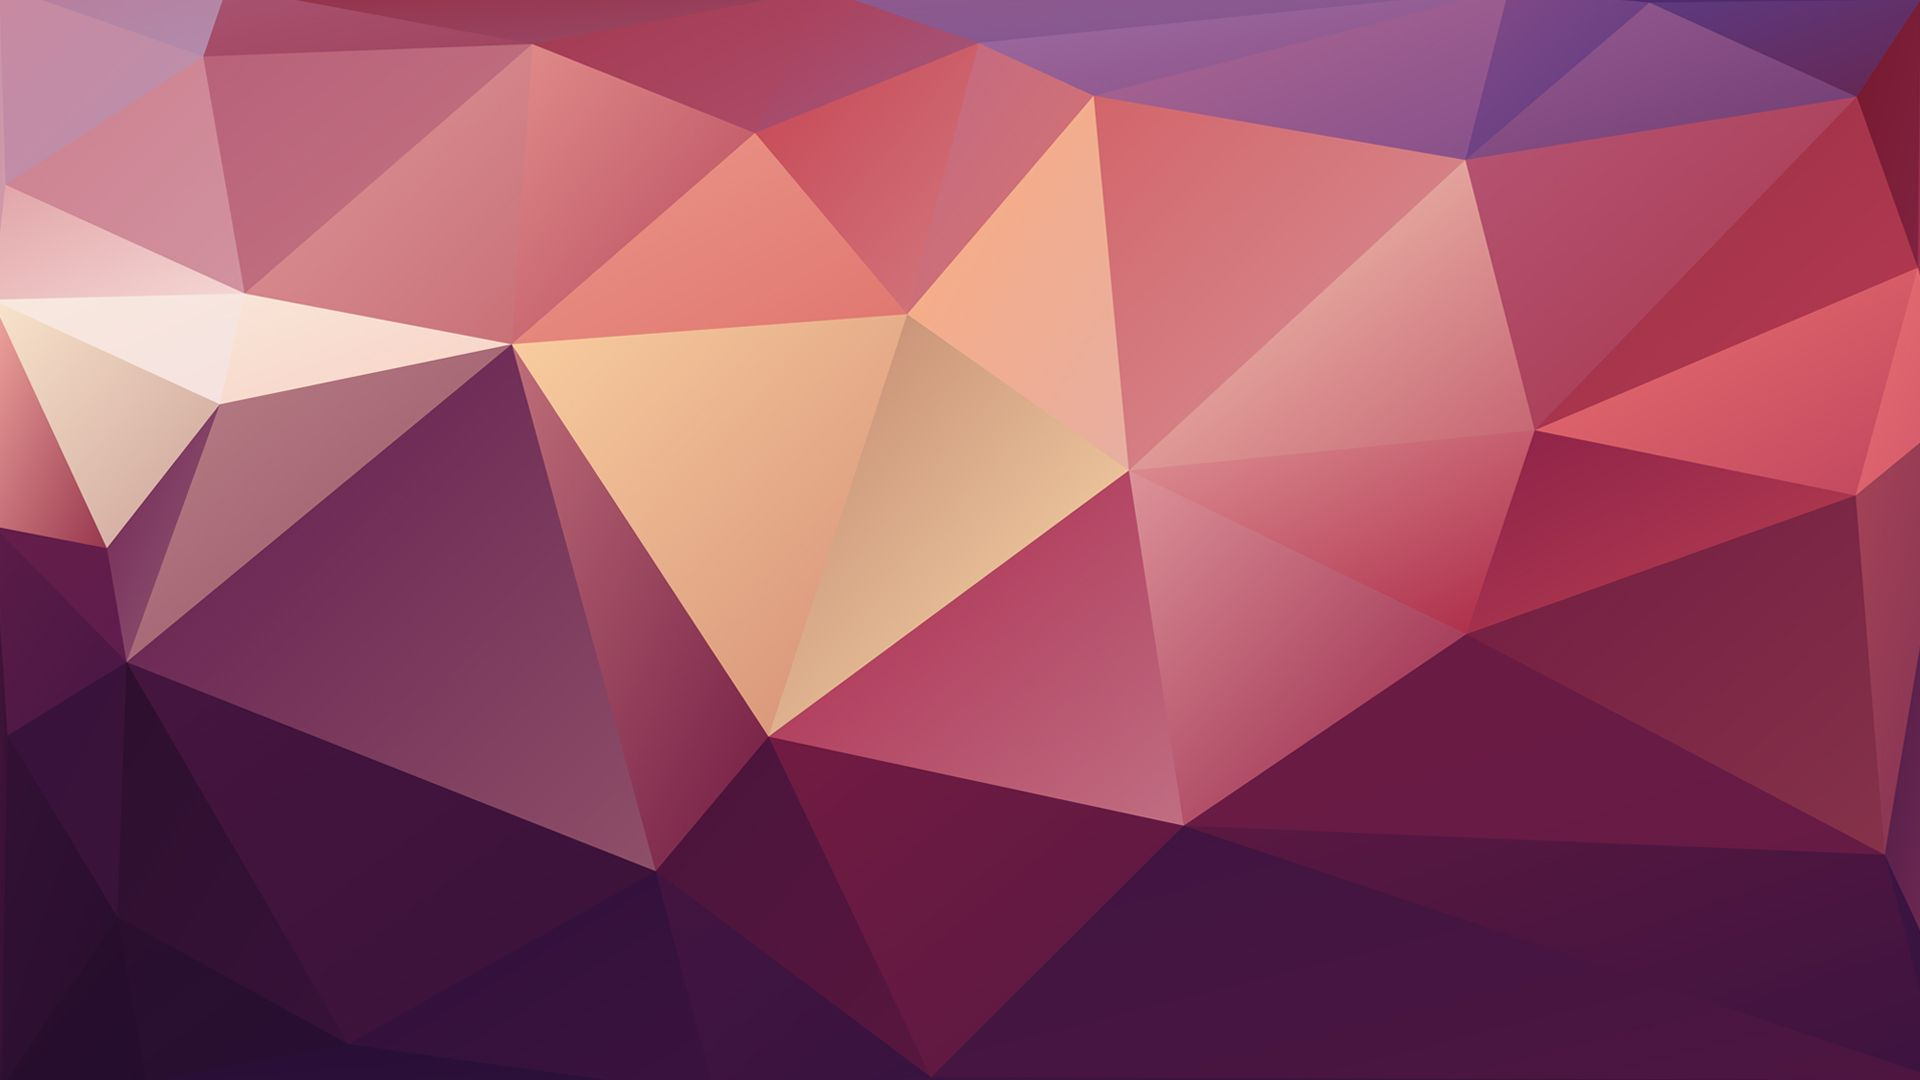 Abstract Art Geometric Wallpapers - Top Free Abstract Art